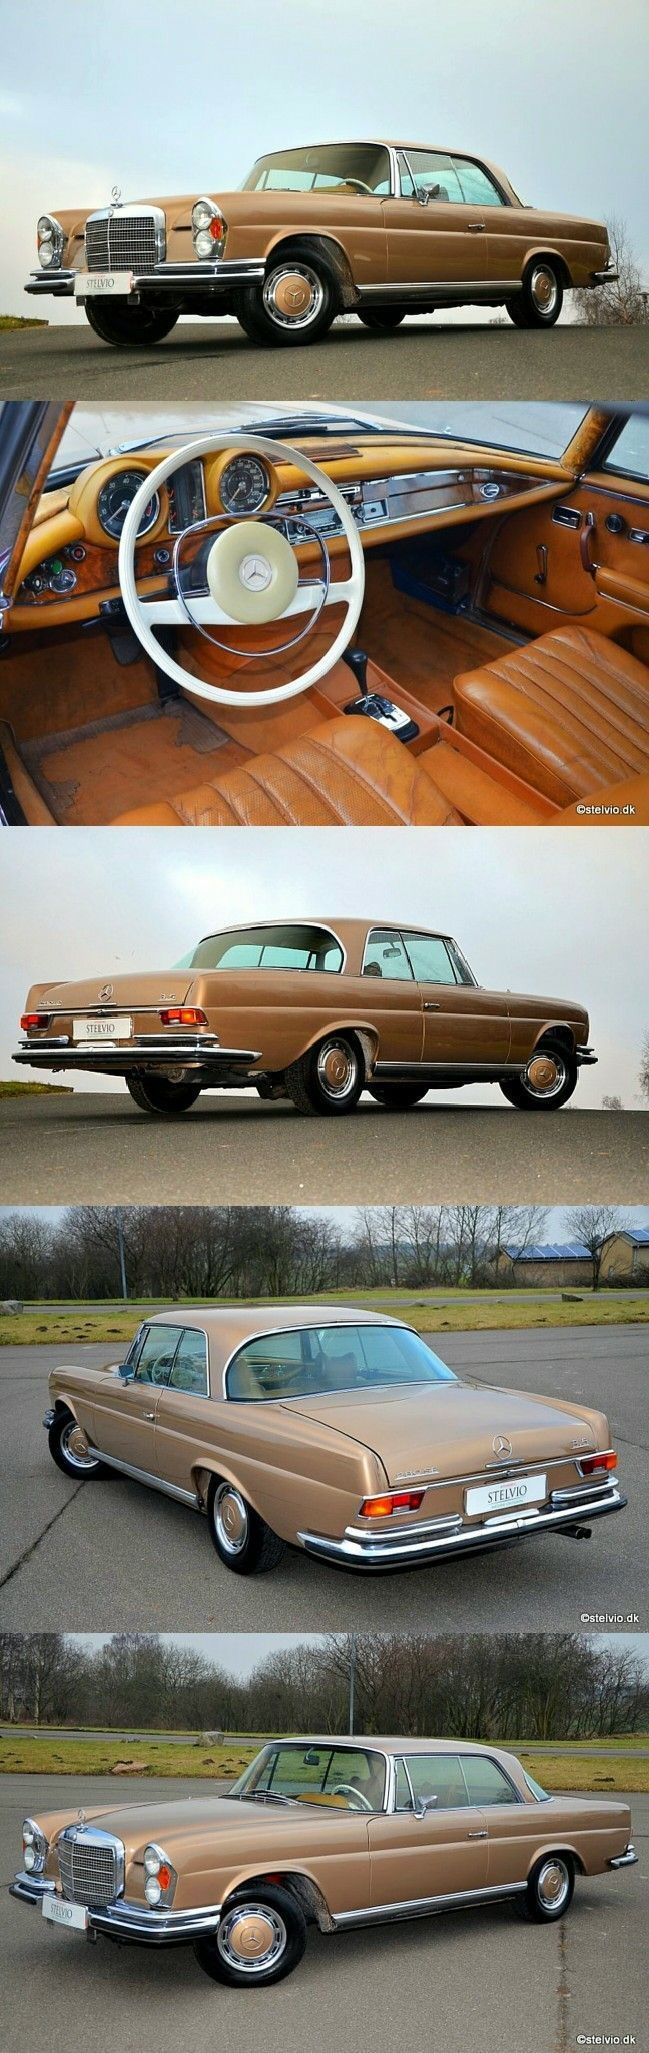 1971 Mercedes Benz 280 SE 3.5 Coupé – #Benz # Coupé #Mercedes #se